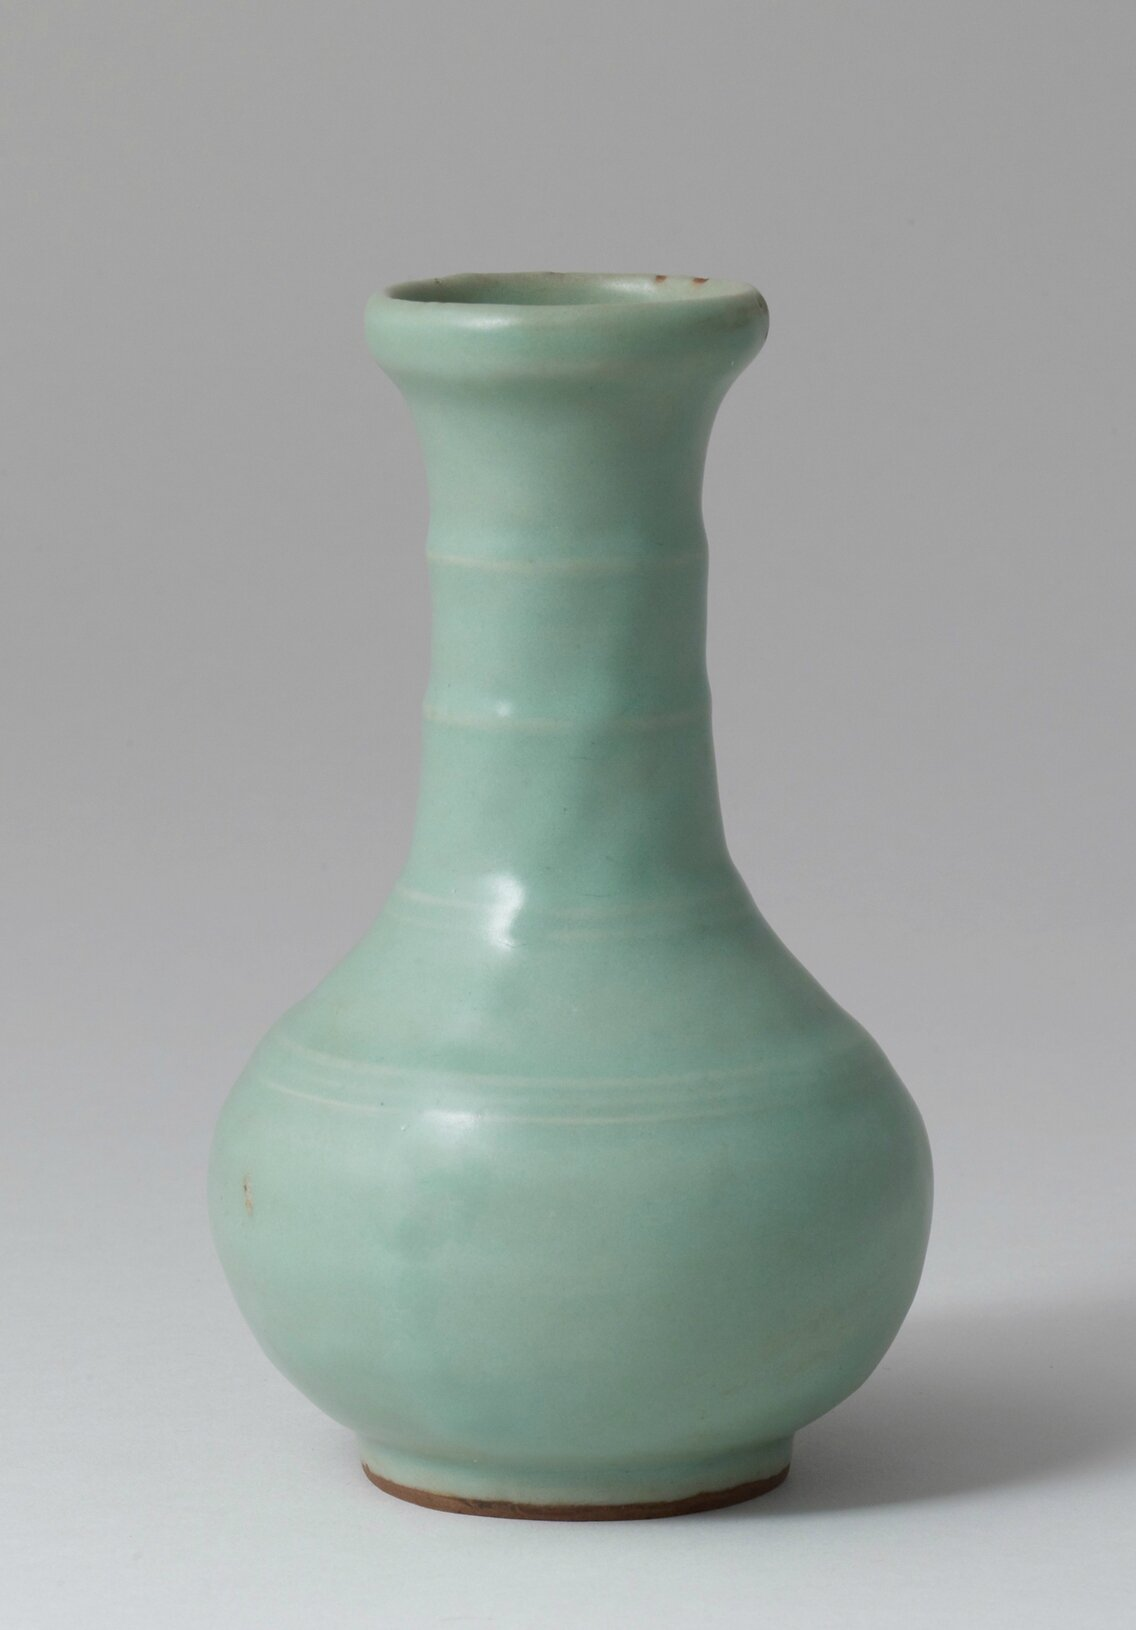 Longquan Celadon Vase with Bamboo Neck, Southern Song Dynasty